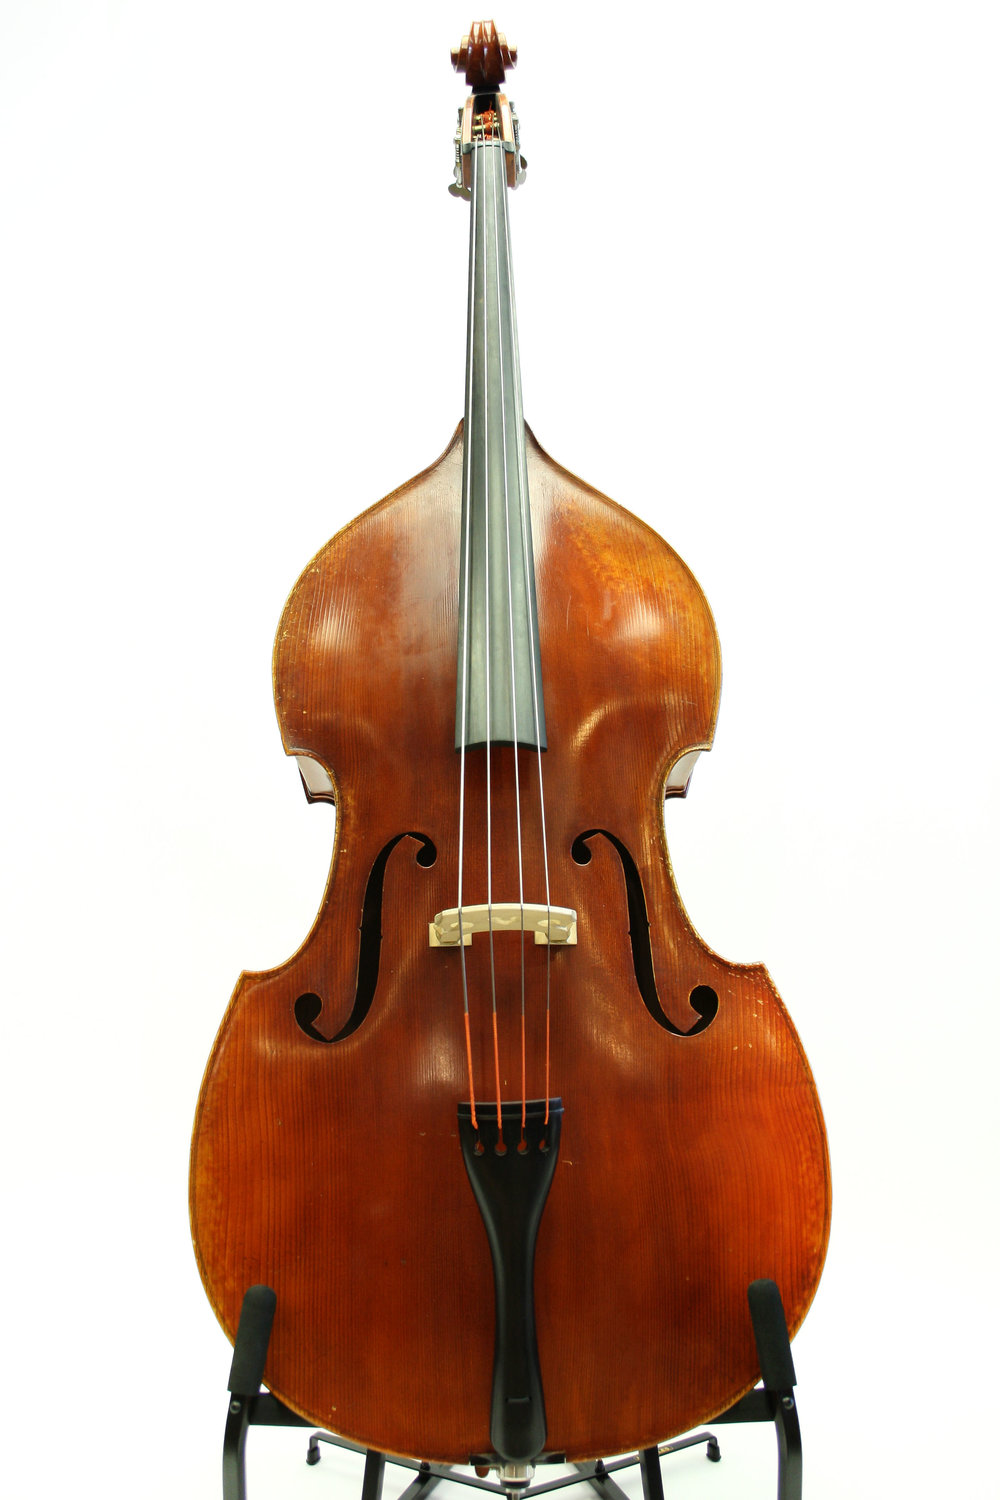 Roderich Paesold Model 593 - $6500